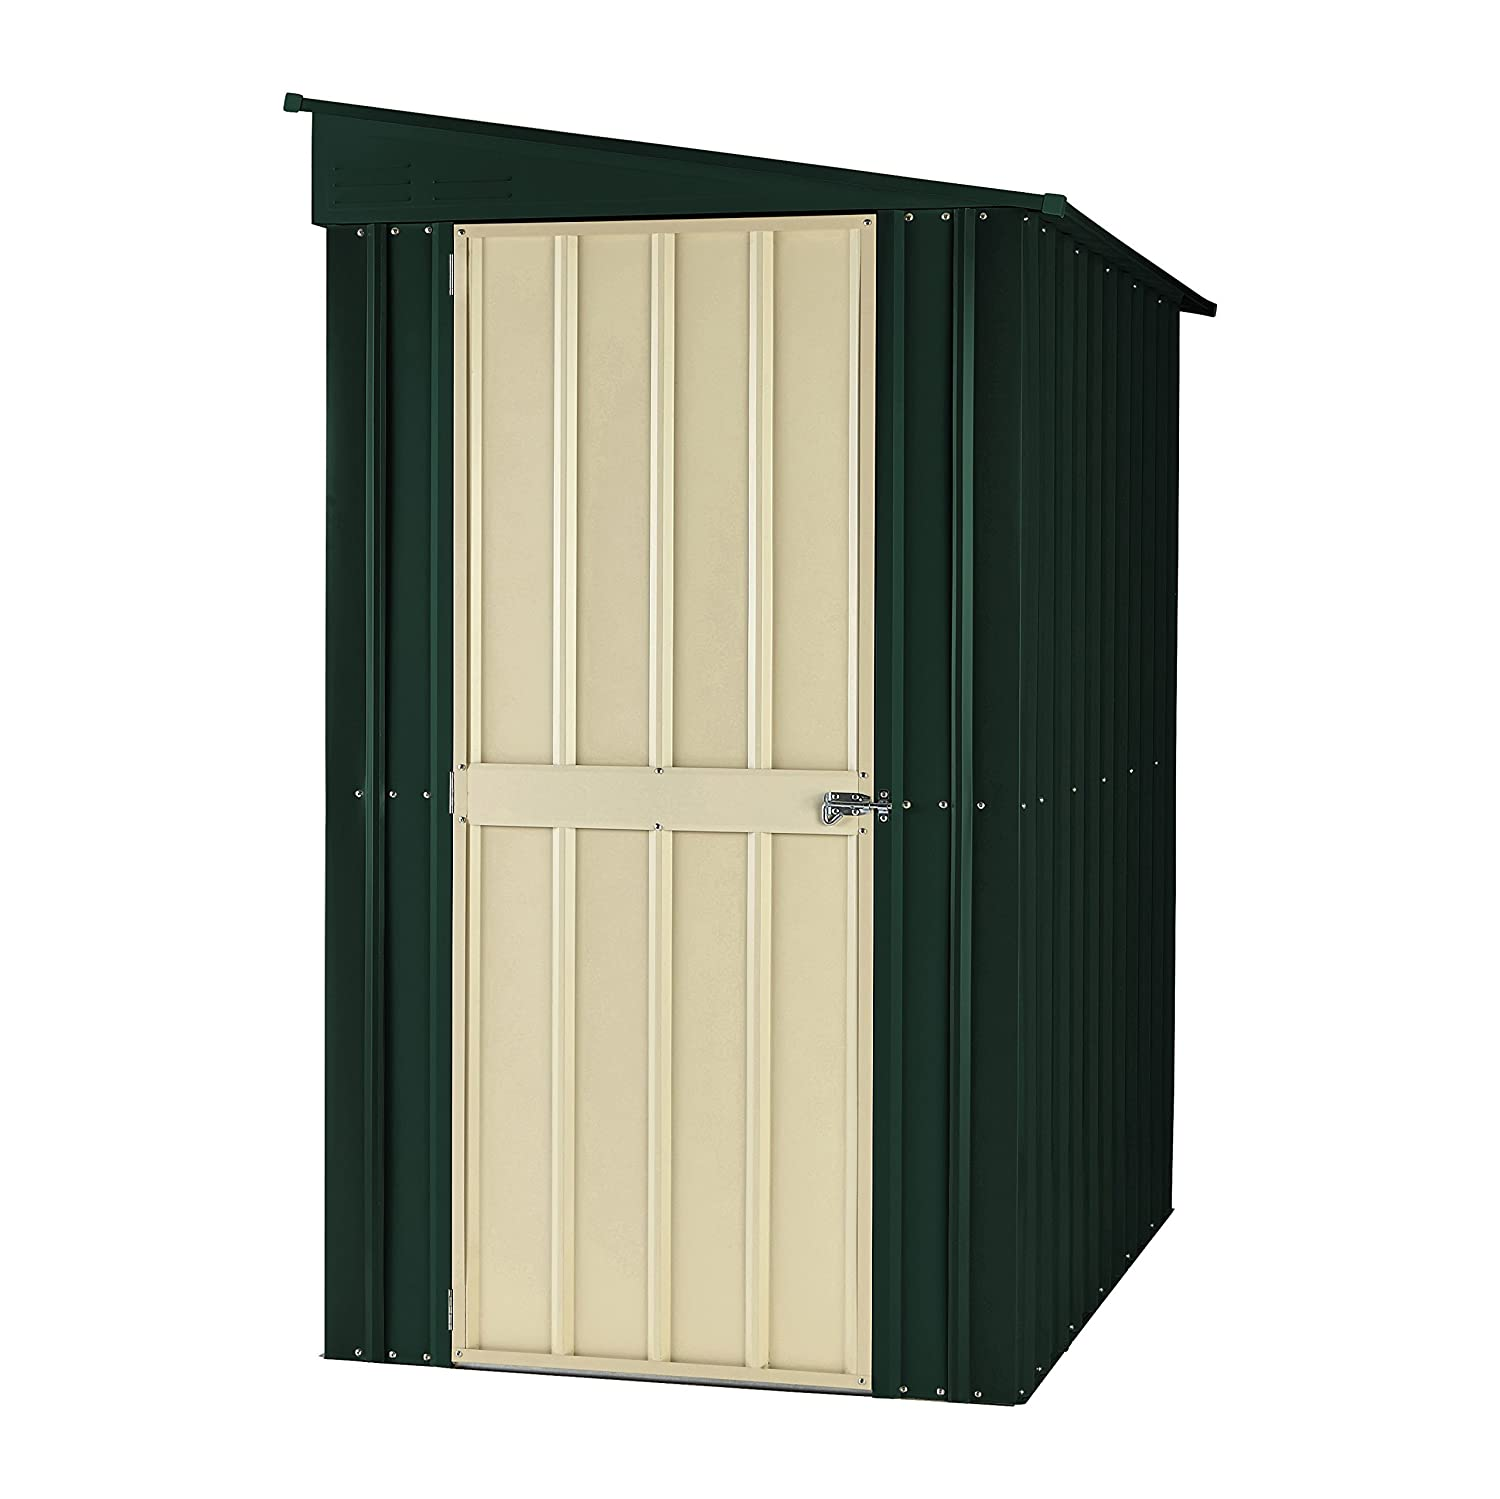 global lotus lean to 46 hg 4 x 6 ft shed heritage green amazoncouk garden outdoors - Garden Sheds 3ft Wide